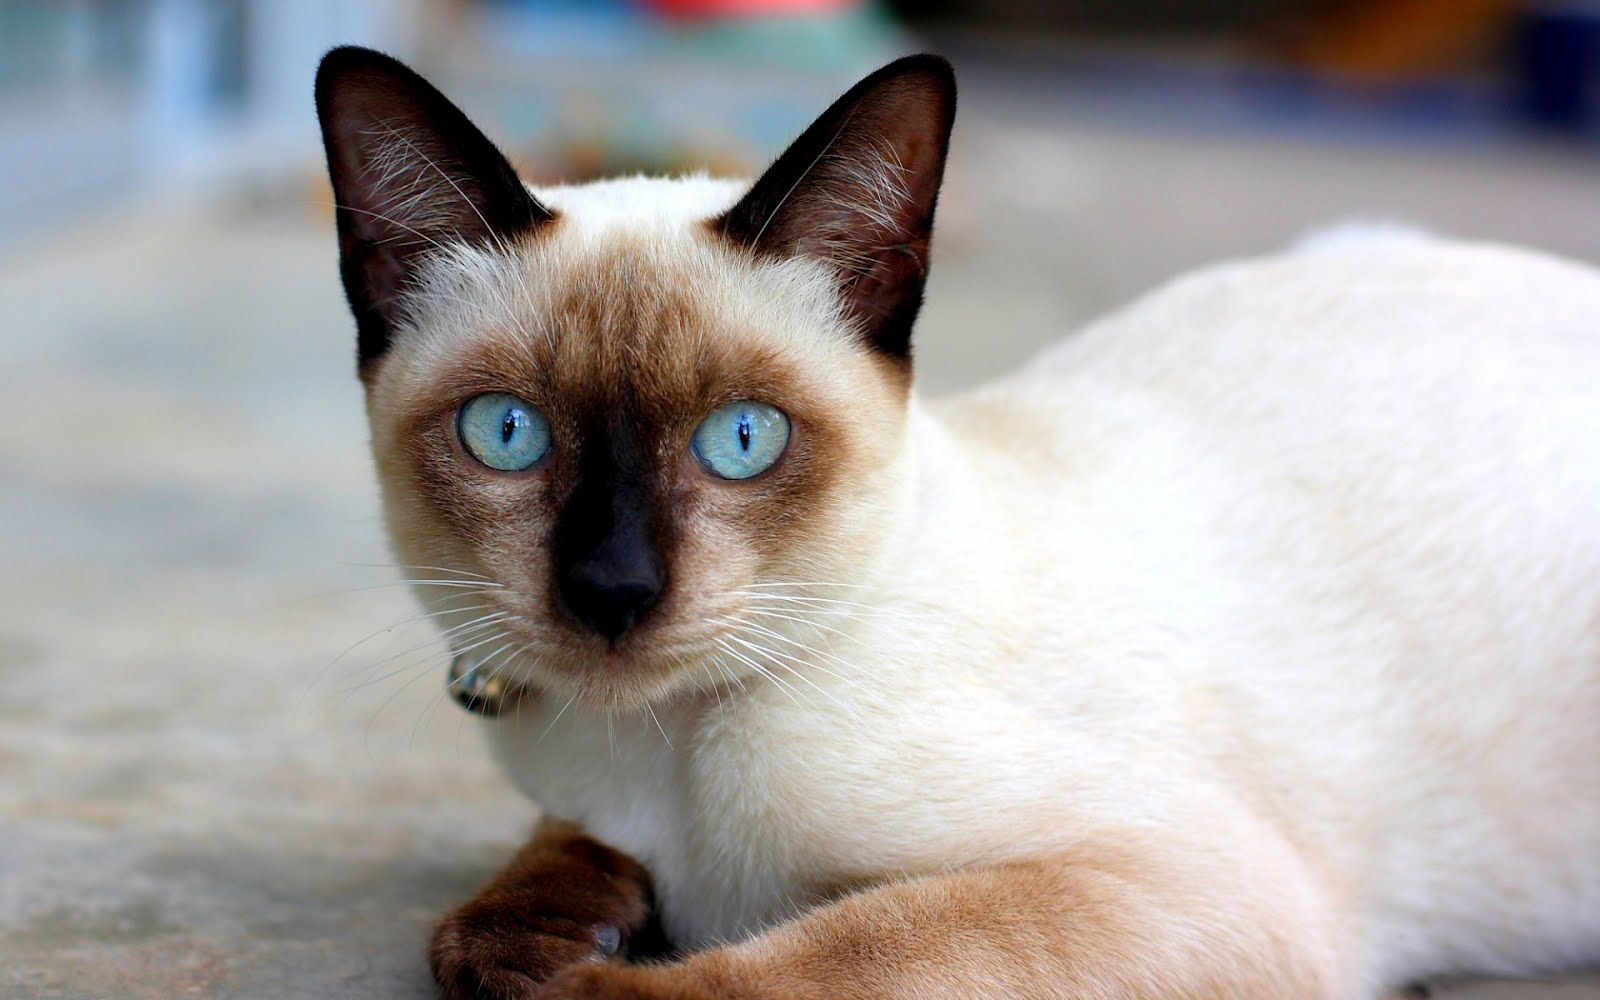 Cute Siamese Kitten Jpg Siamese Cat Wallpaper Siamese Cats Blue Point Cat With Blue Eyes Cats